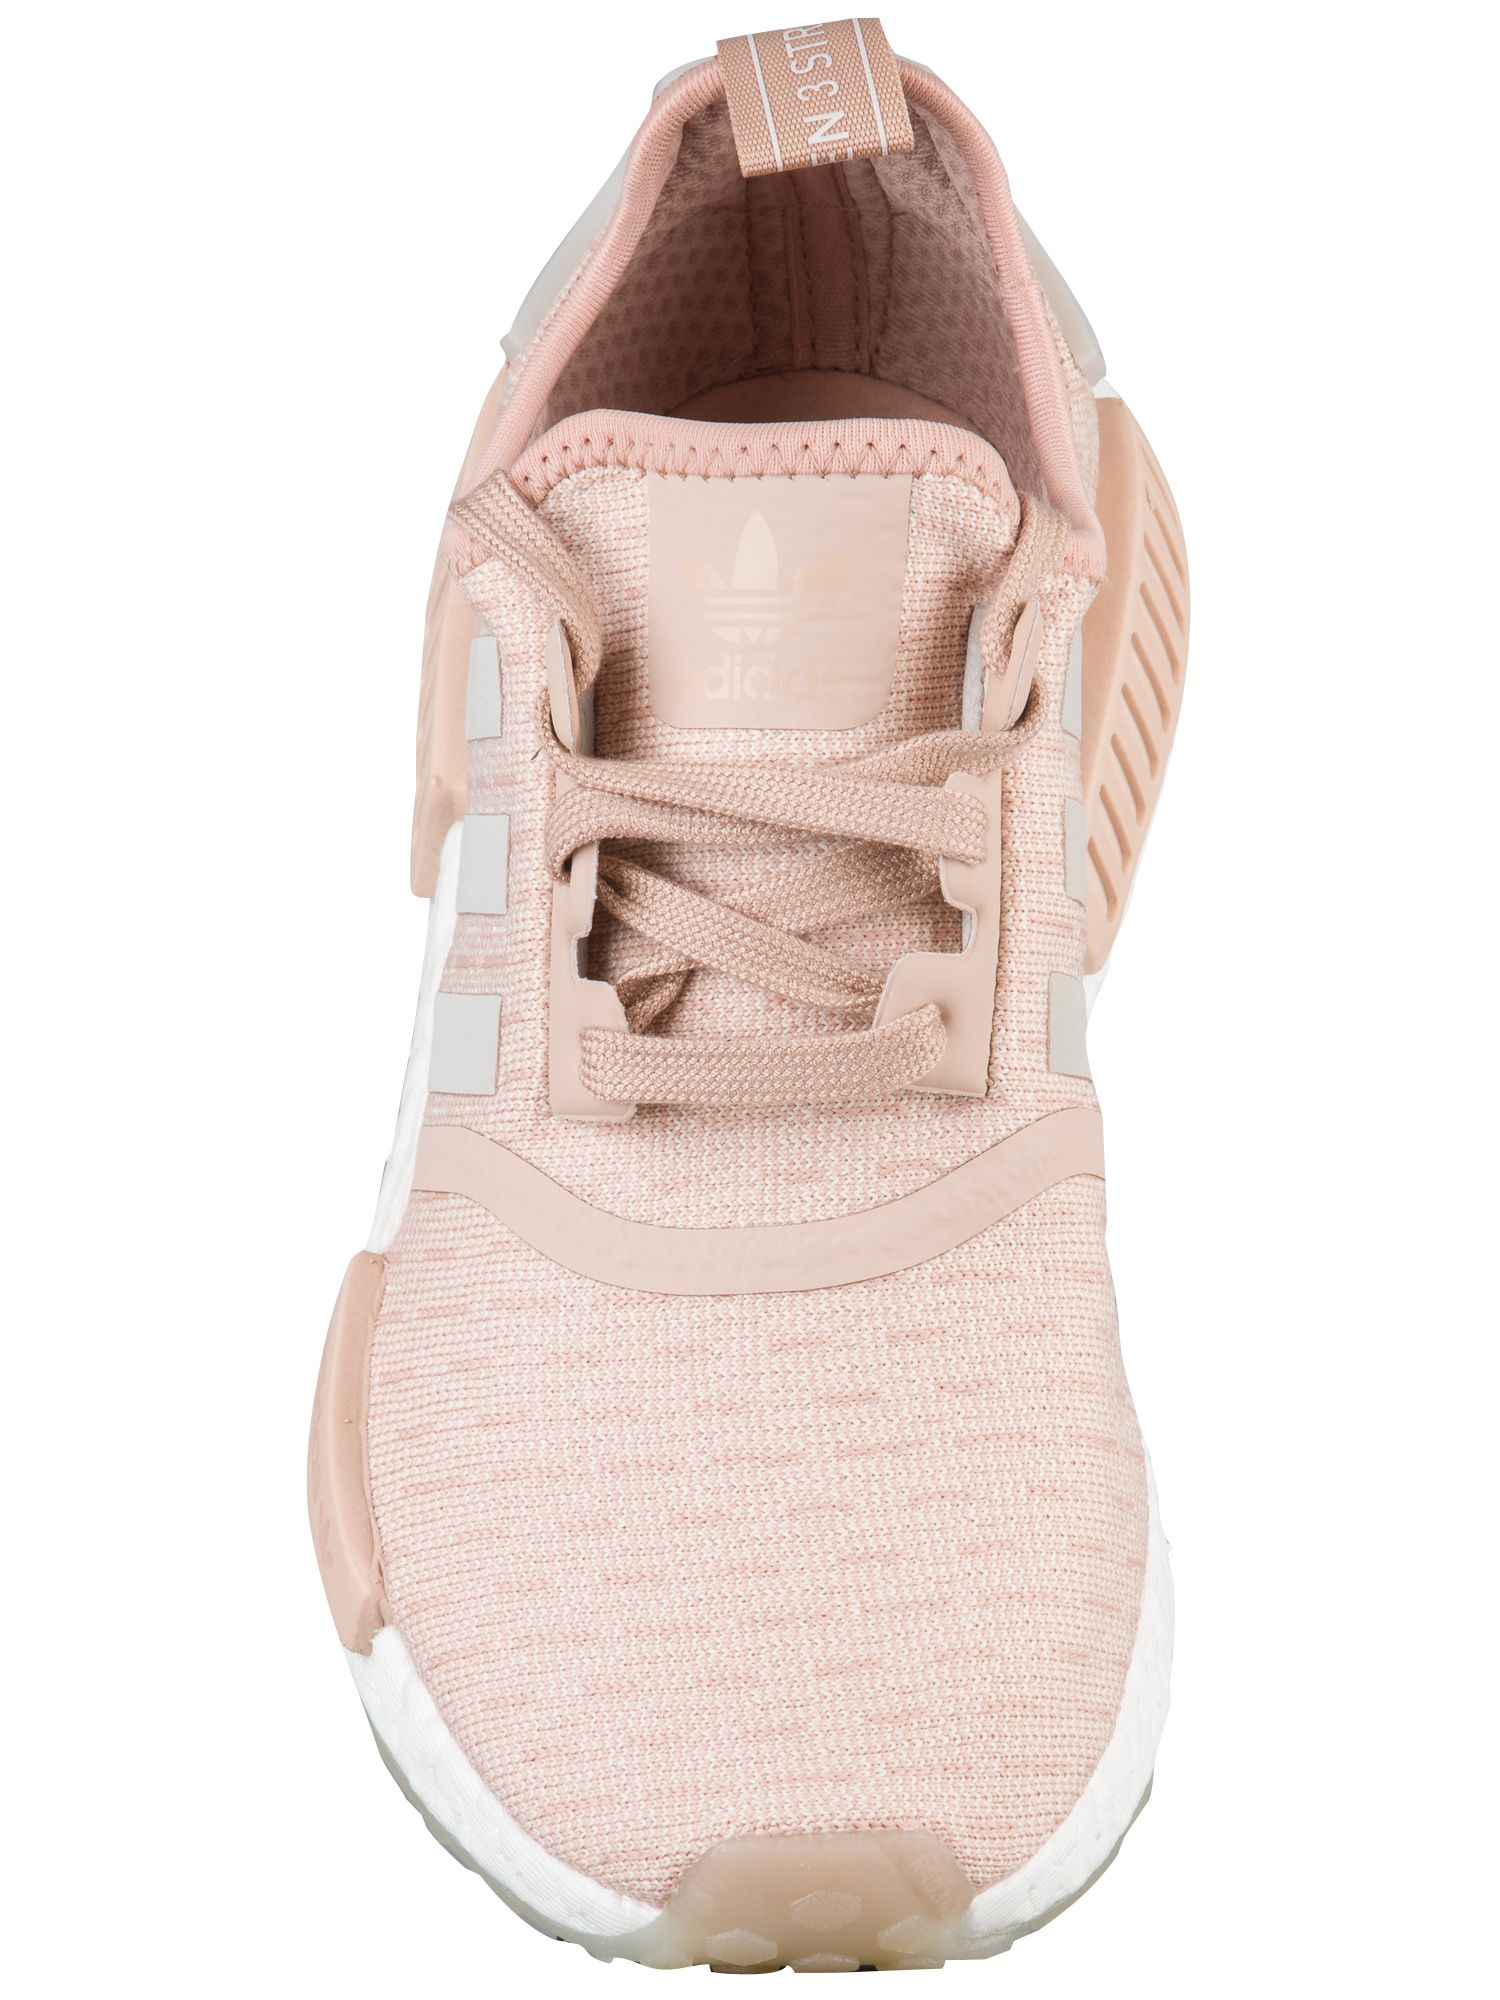 efee888ad WIN2 STORE - WIN2 STORE Originals NMD R1 - Women s - Running - Shoes - Ash  Pearl Chalk Pearl White - Walmart.com